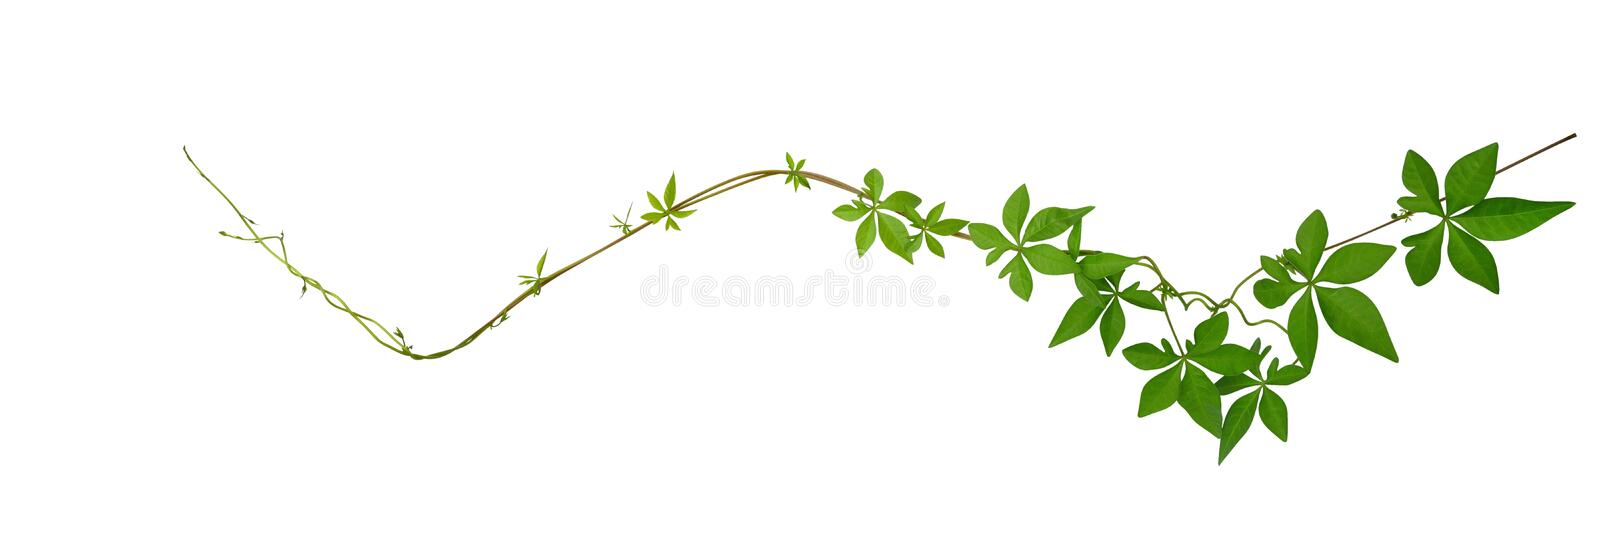 Wild morning glory leaves climbing on twisted jungle liana isolated on white back ground, path. Wild morning glory leaves climbing on twisted jungle liana royalty free stock photography